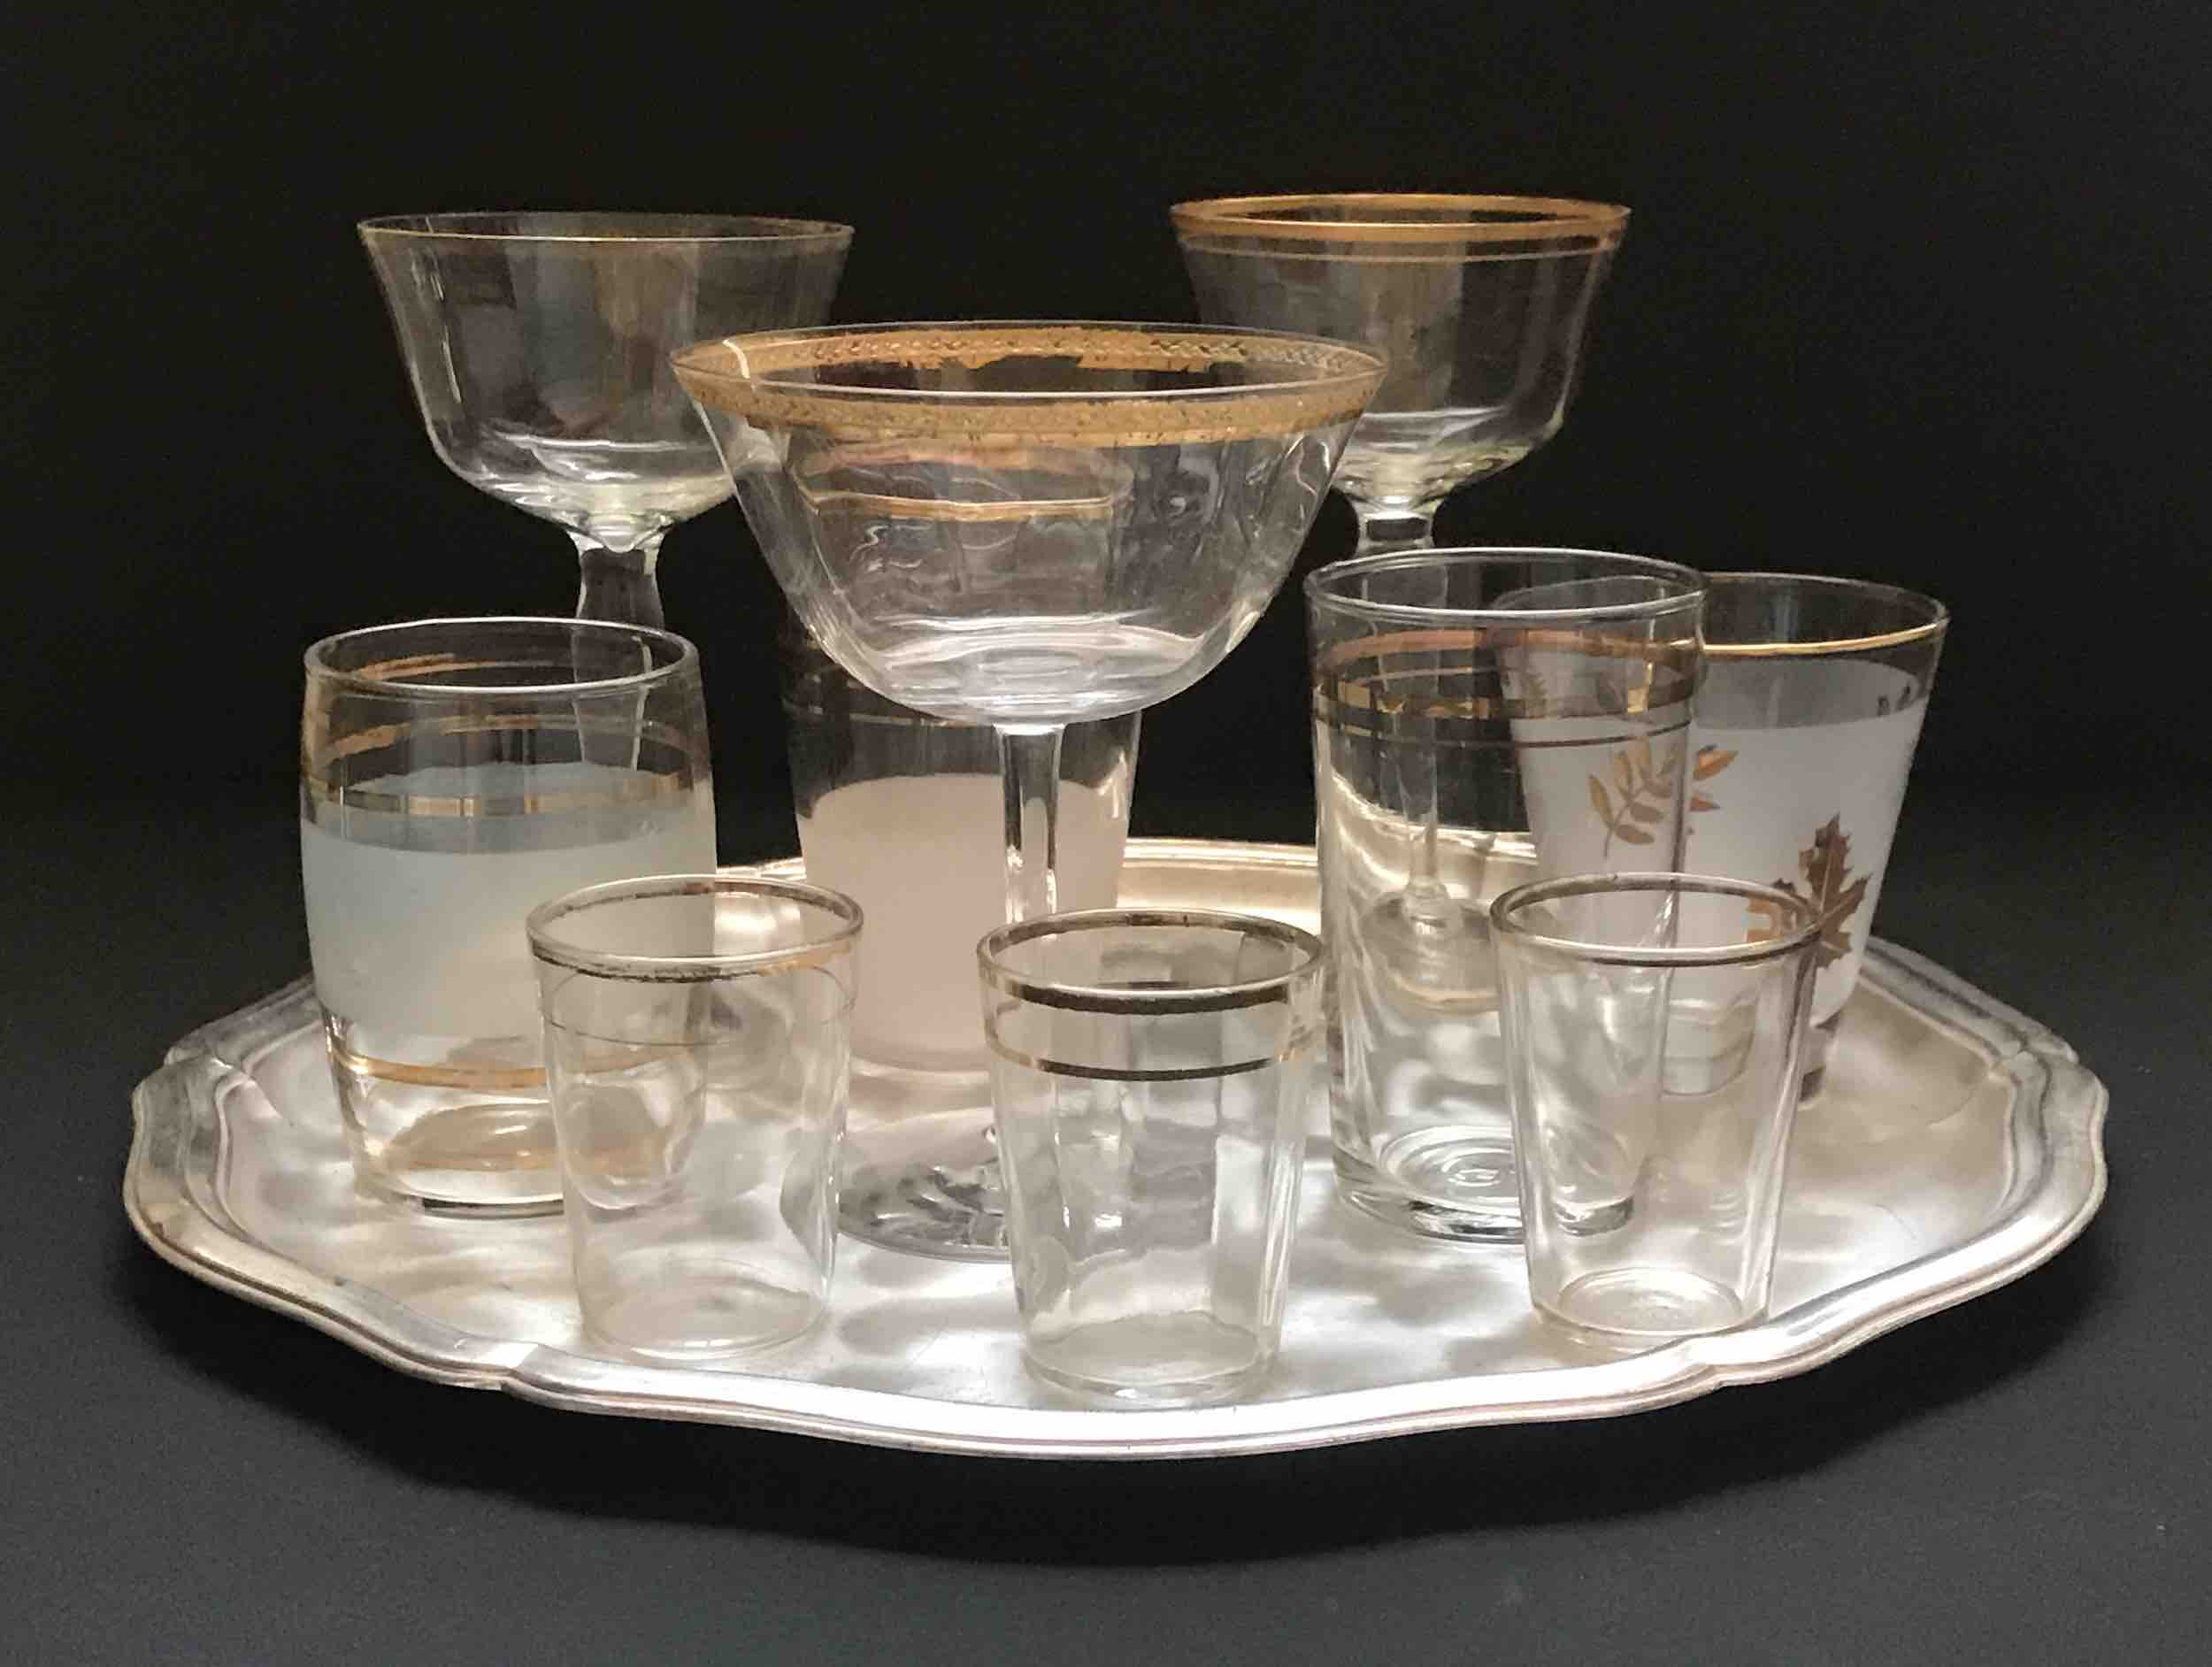 #9: Set of ten gold-trimmed glasses (3 stems, 4 tumblers, 3 shot glasses) on brushed silver platter.